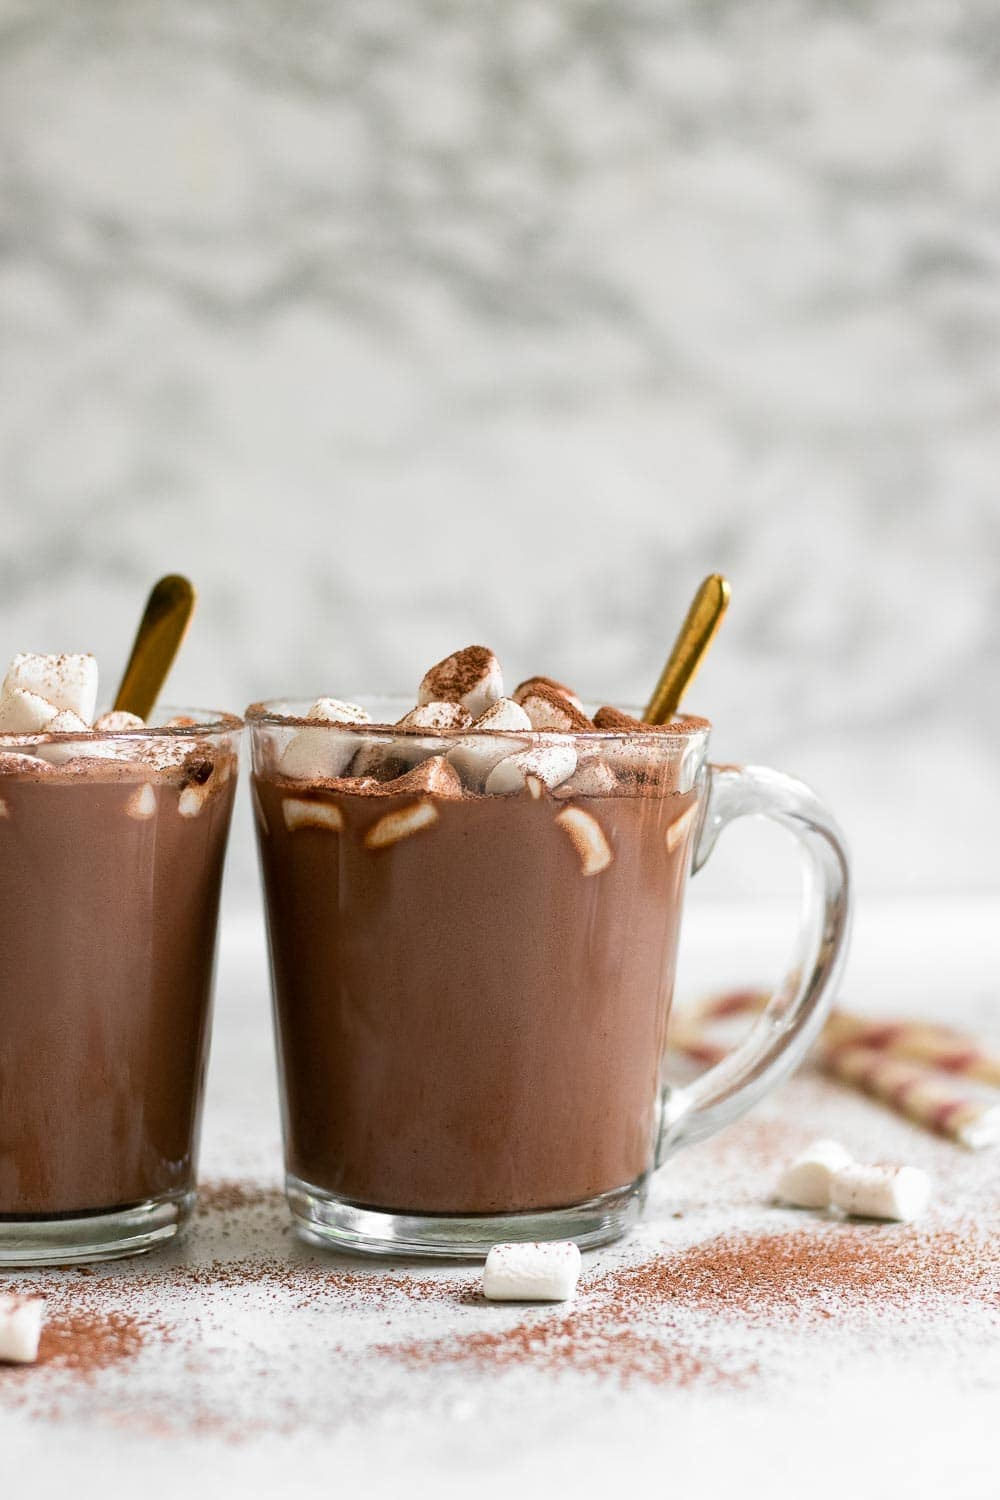 Healthy hot chocolate in a glass mug with a gold spoon on the side.